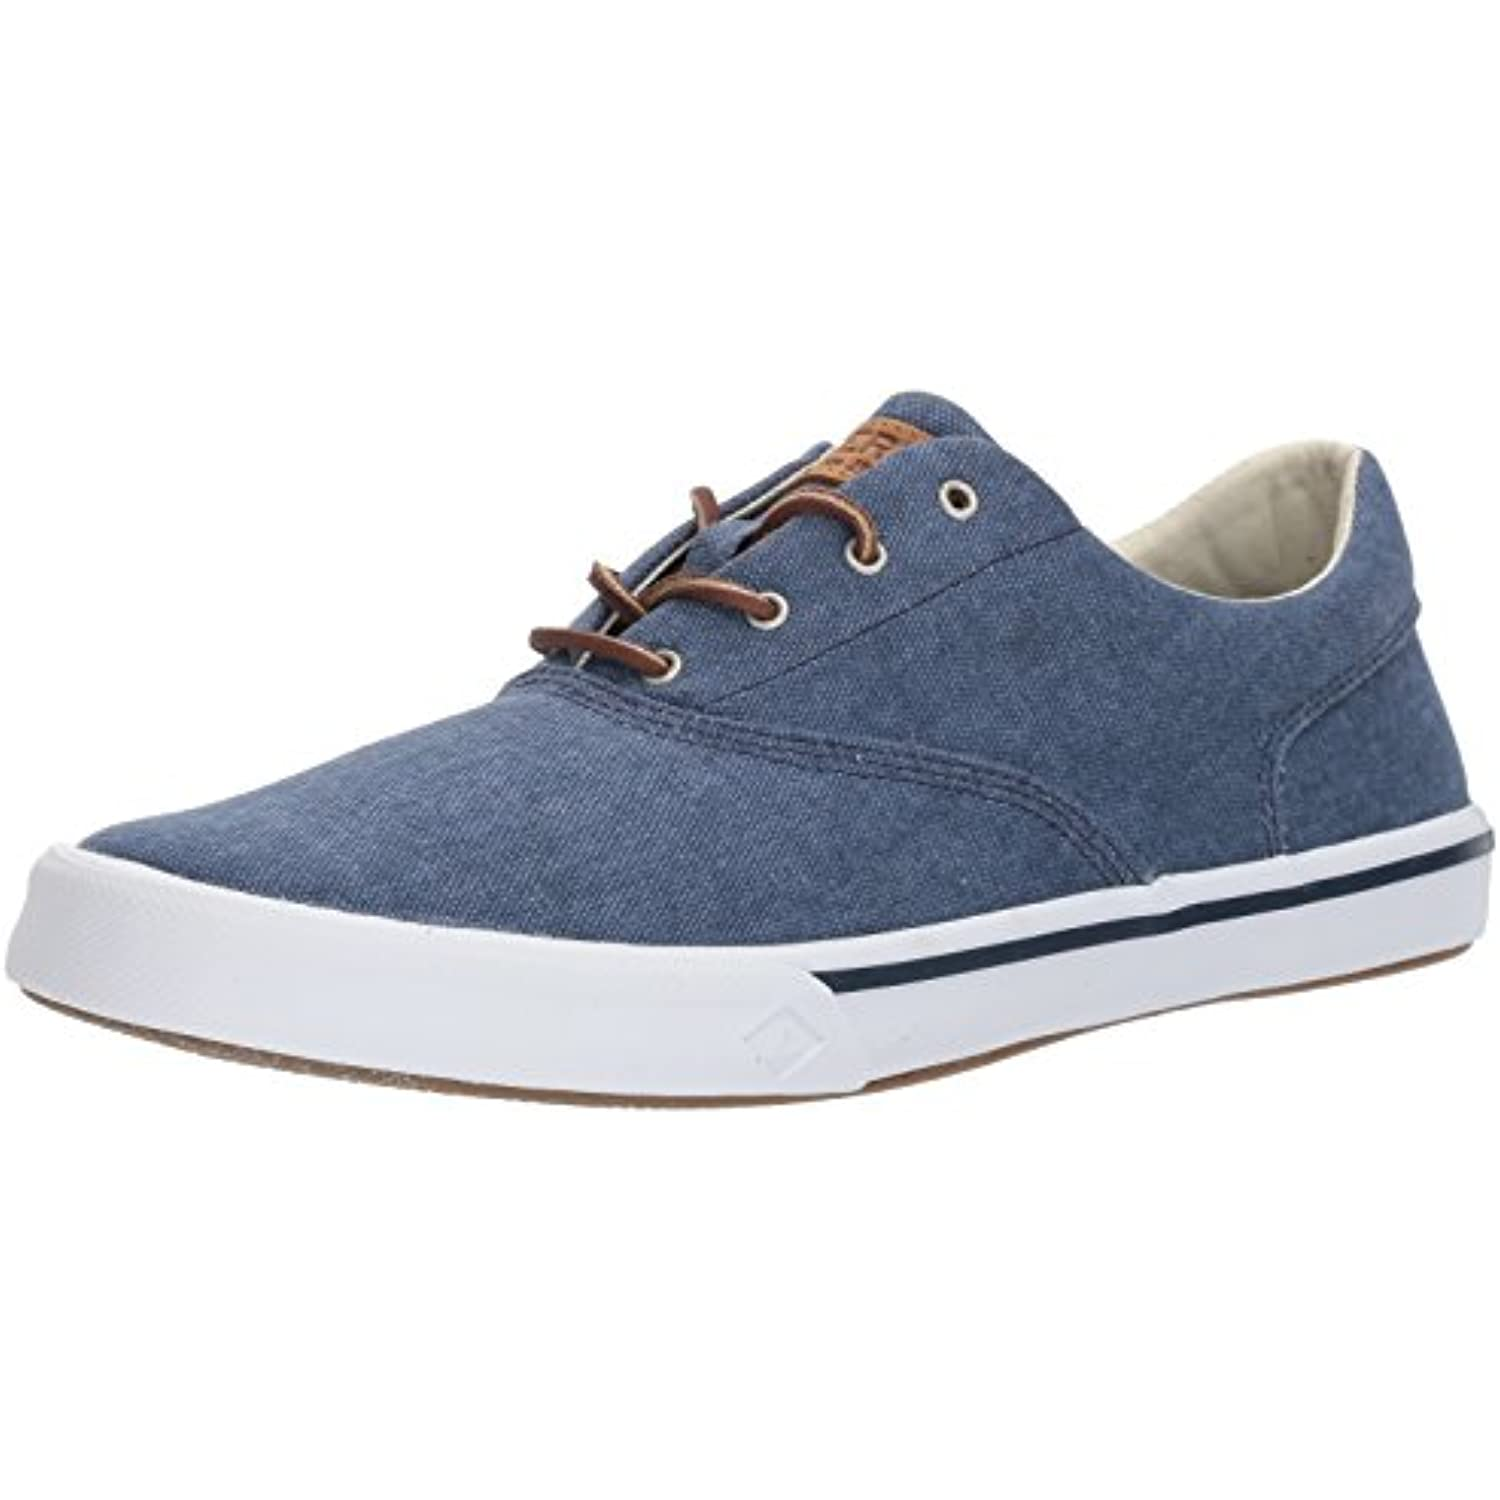 Sperry Striper II CVO Washed Parent Navy, Sneaker Uomo Parent Washed 27c64f